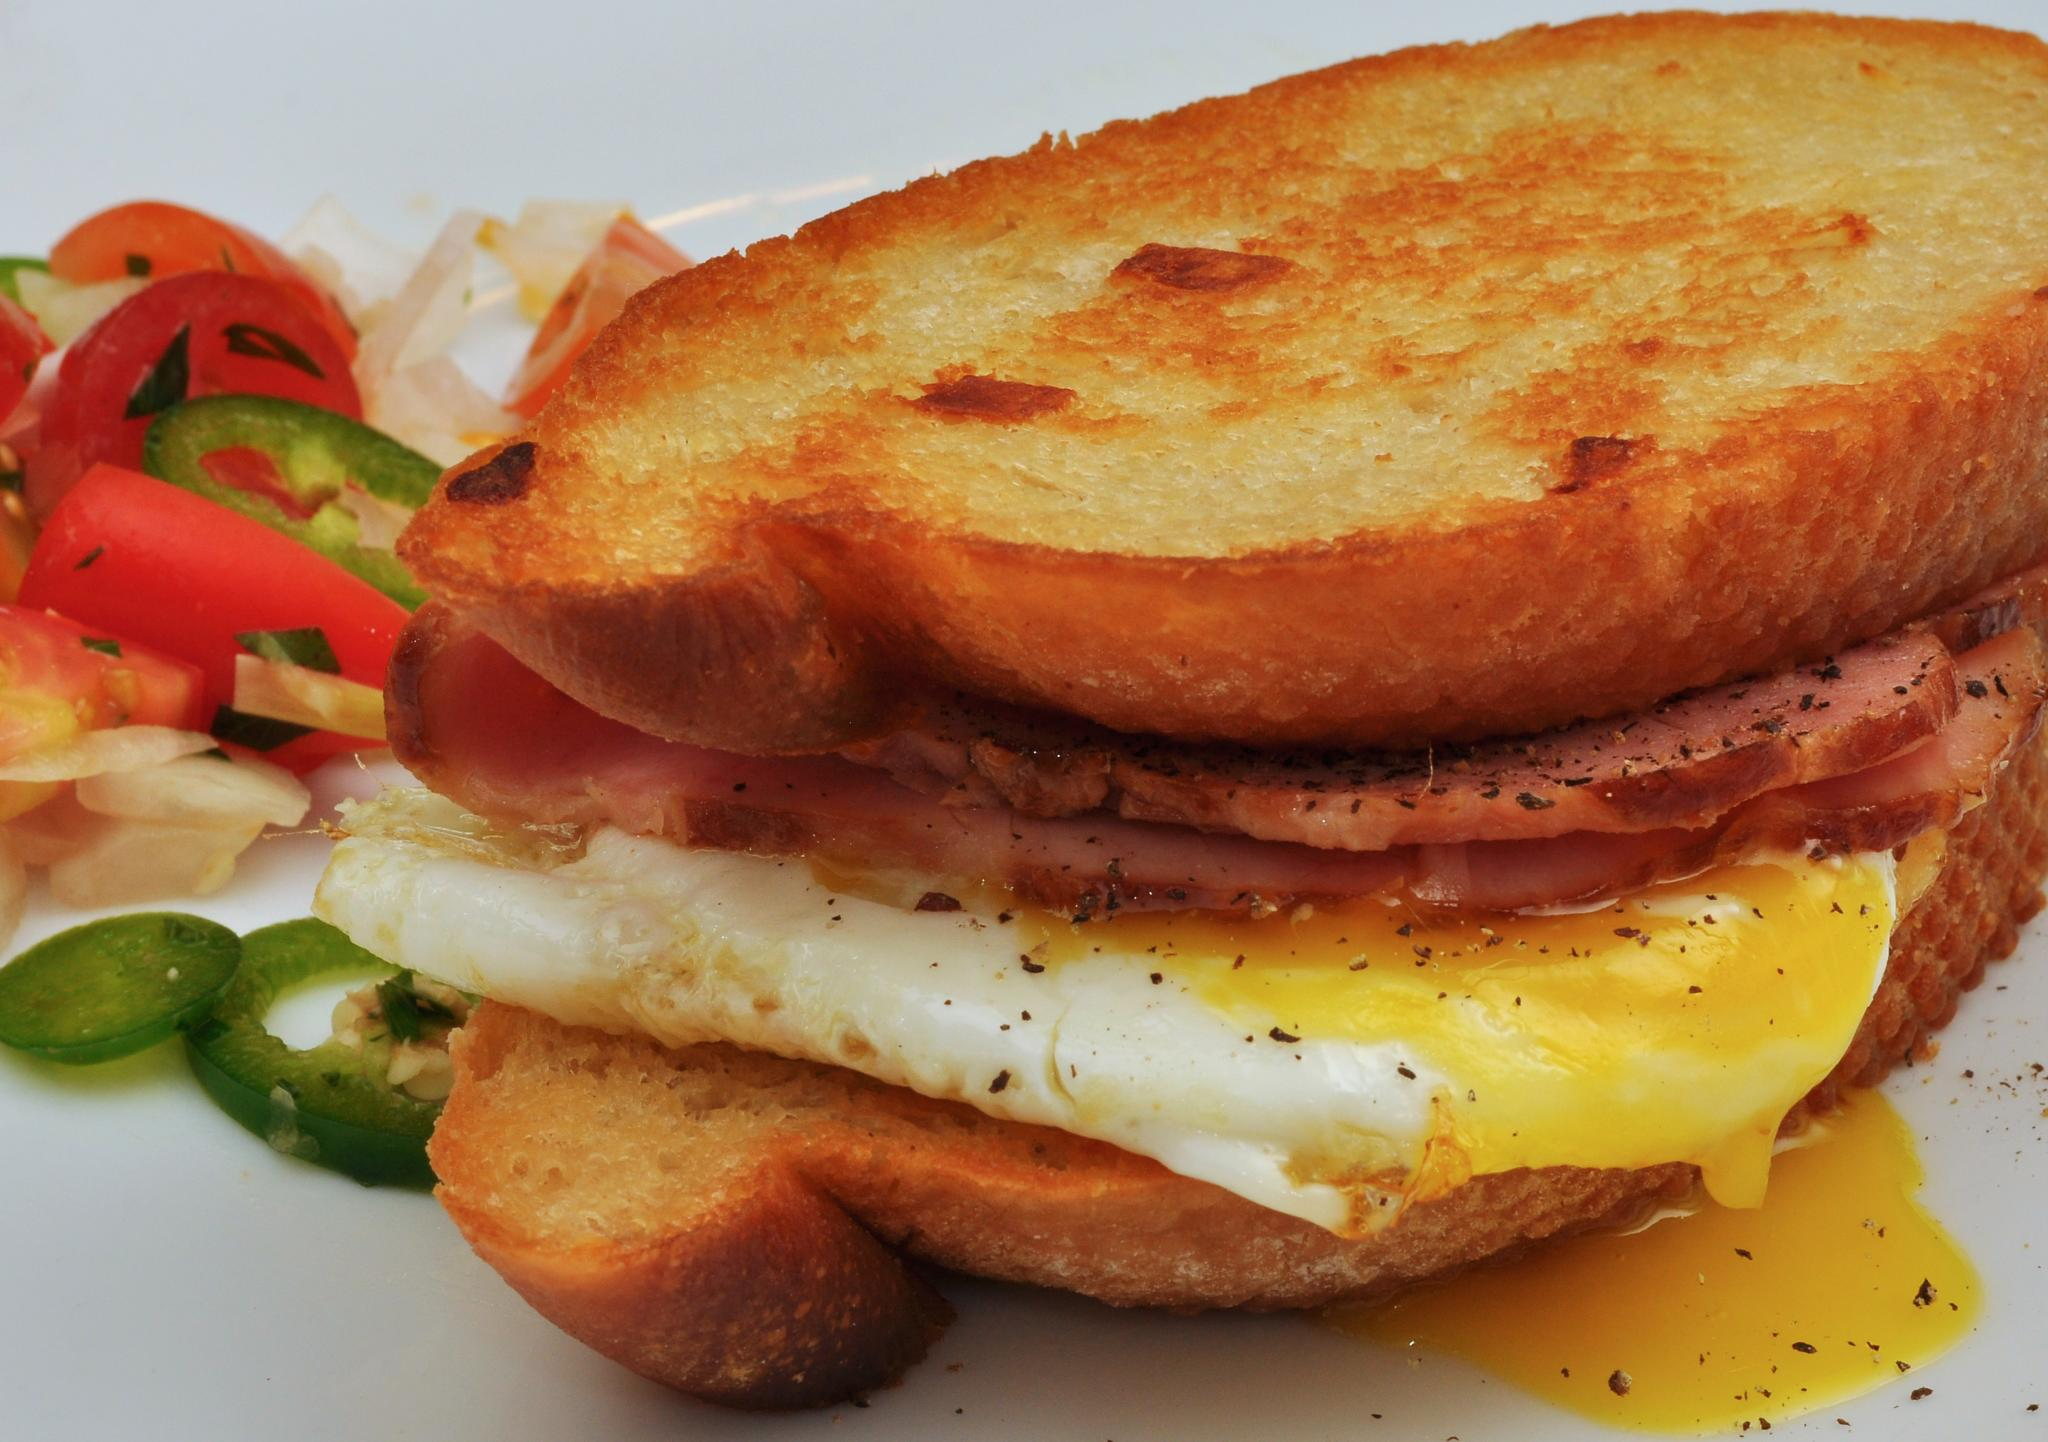 File:Breakfast sandwich.jpg - Wikimedia Commons